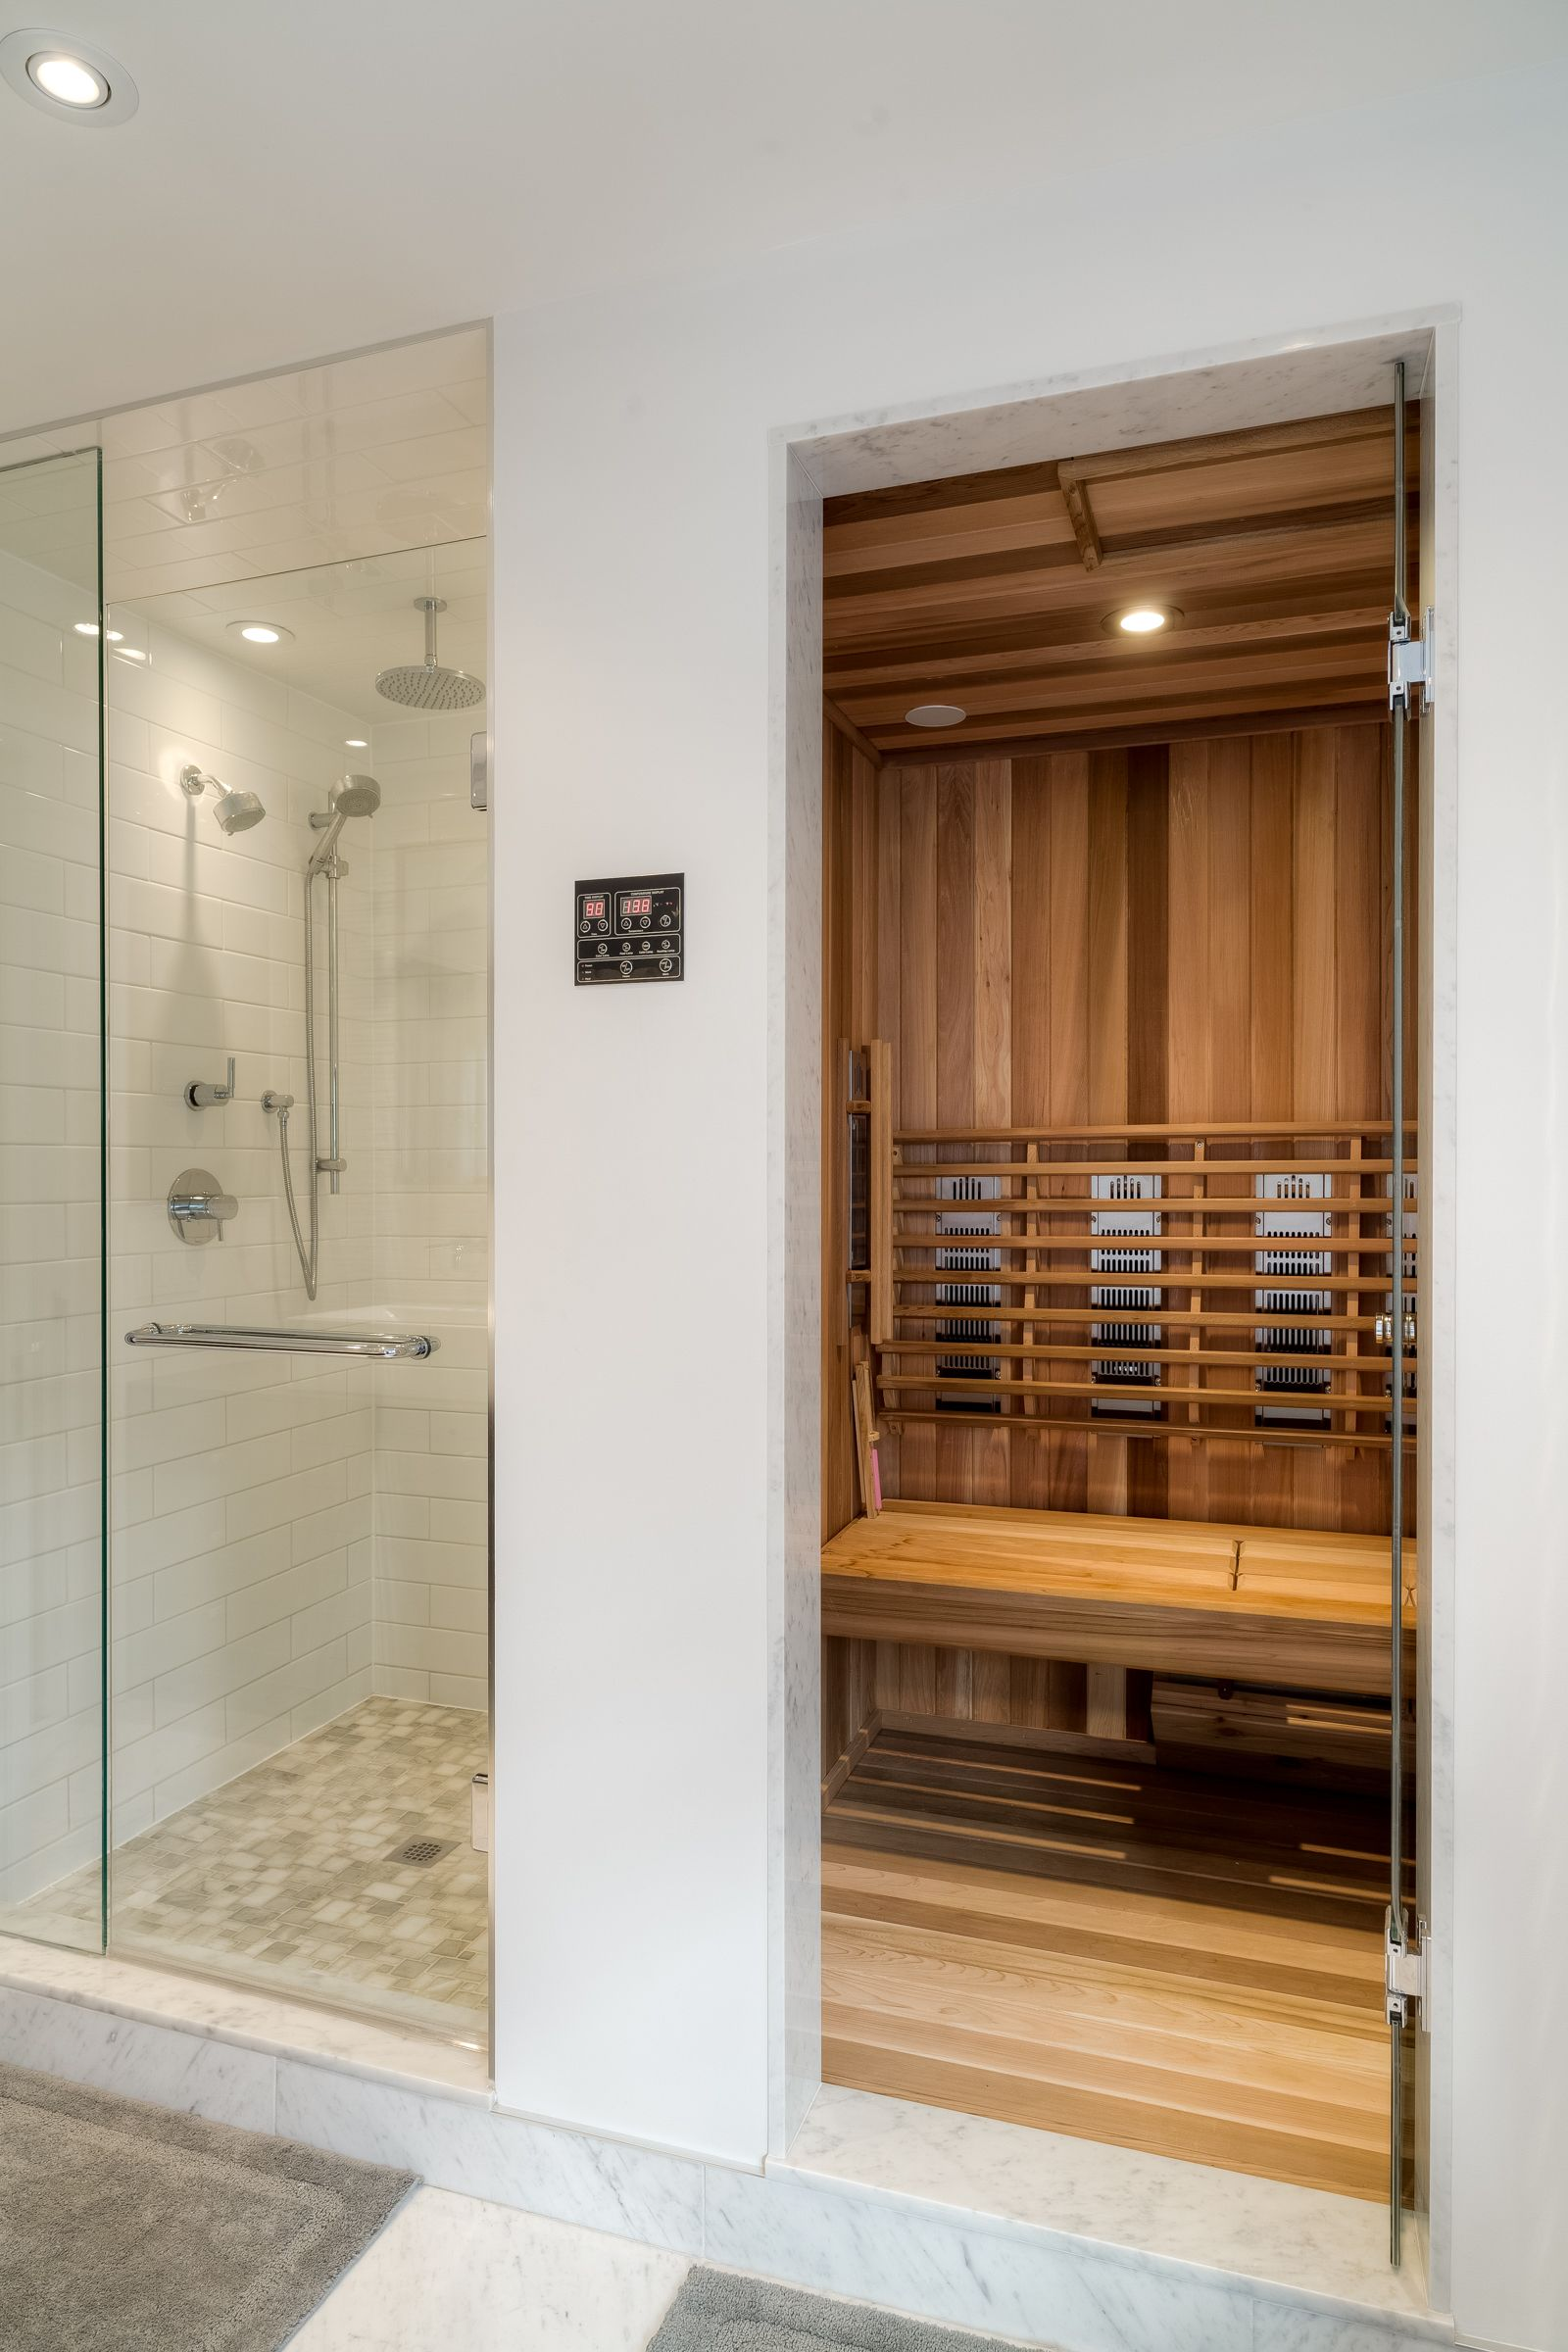 Bathroom Sauna And Steam Room: Sauna Shower, Sauna